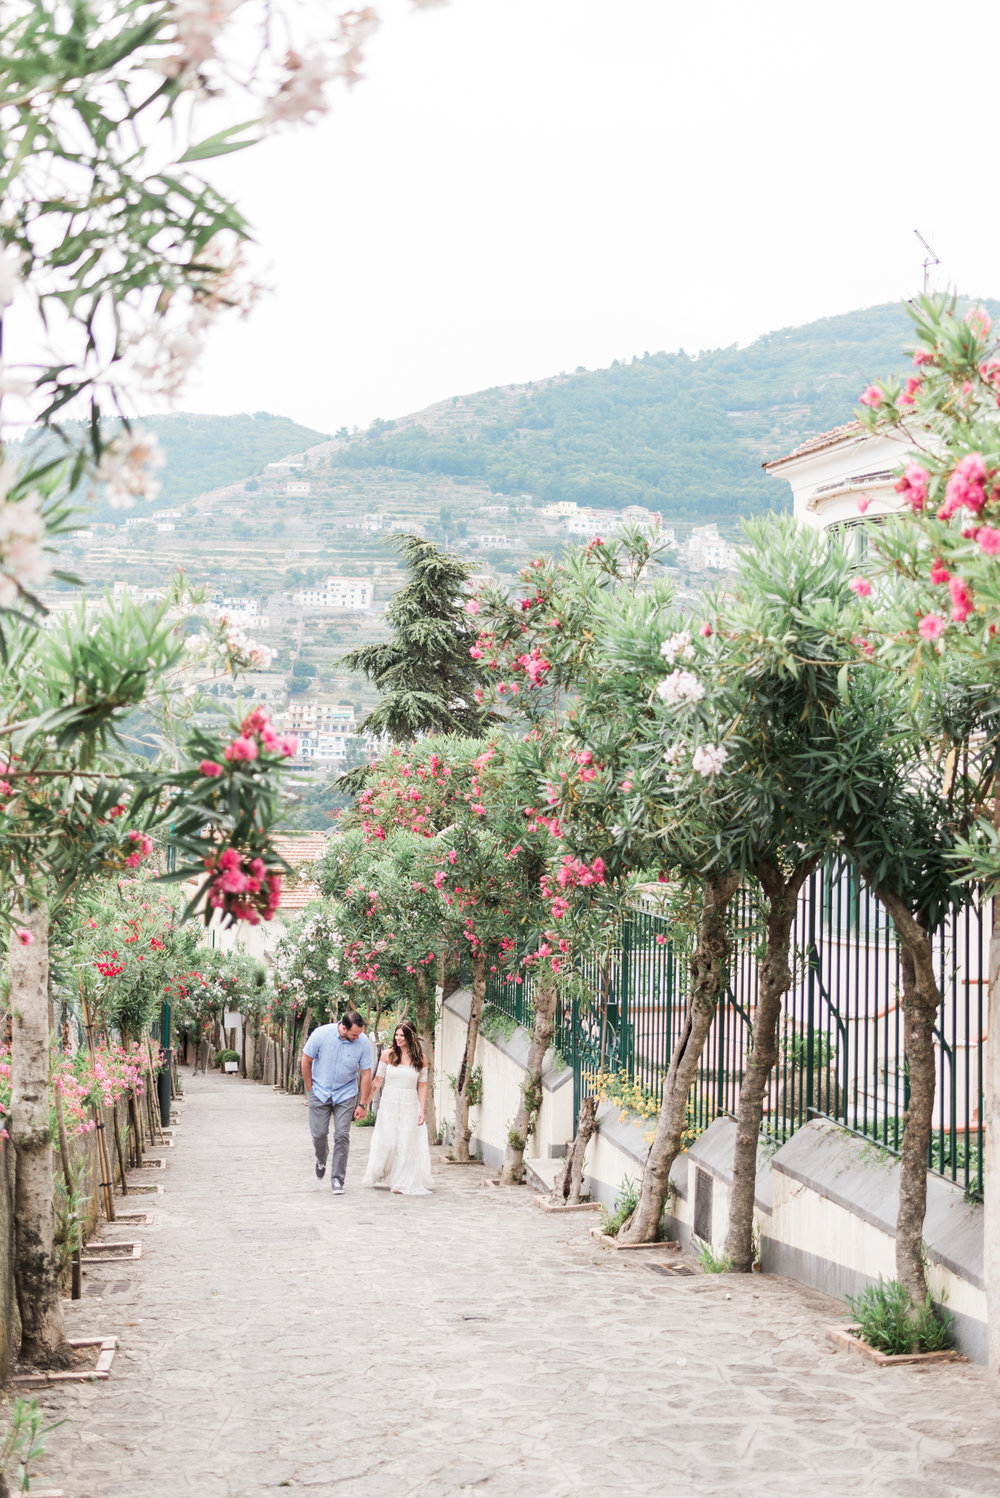 Dreaming of a stunning Italian getaway? Take a look at 50 breathtaking photos from the Amalfi Coast to fuel your wanderlust!   Travel + Vacation Photographer   Flytographer captures your travel memories - everything from surprise proposals, honeymoons, family vacations, and more.